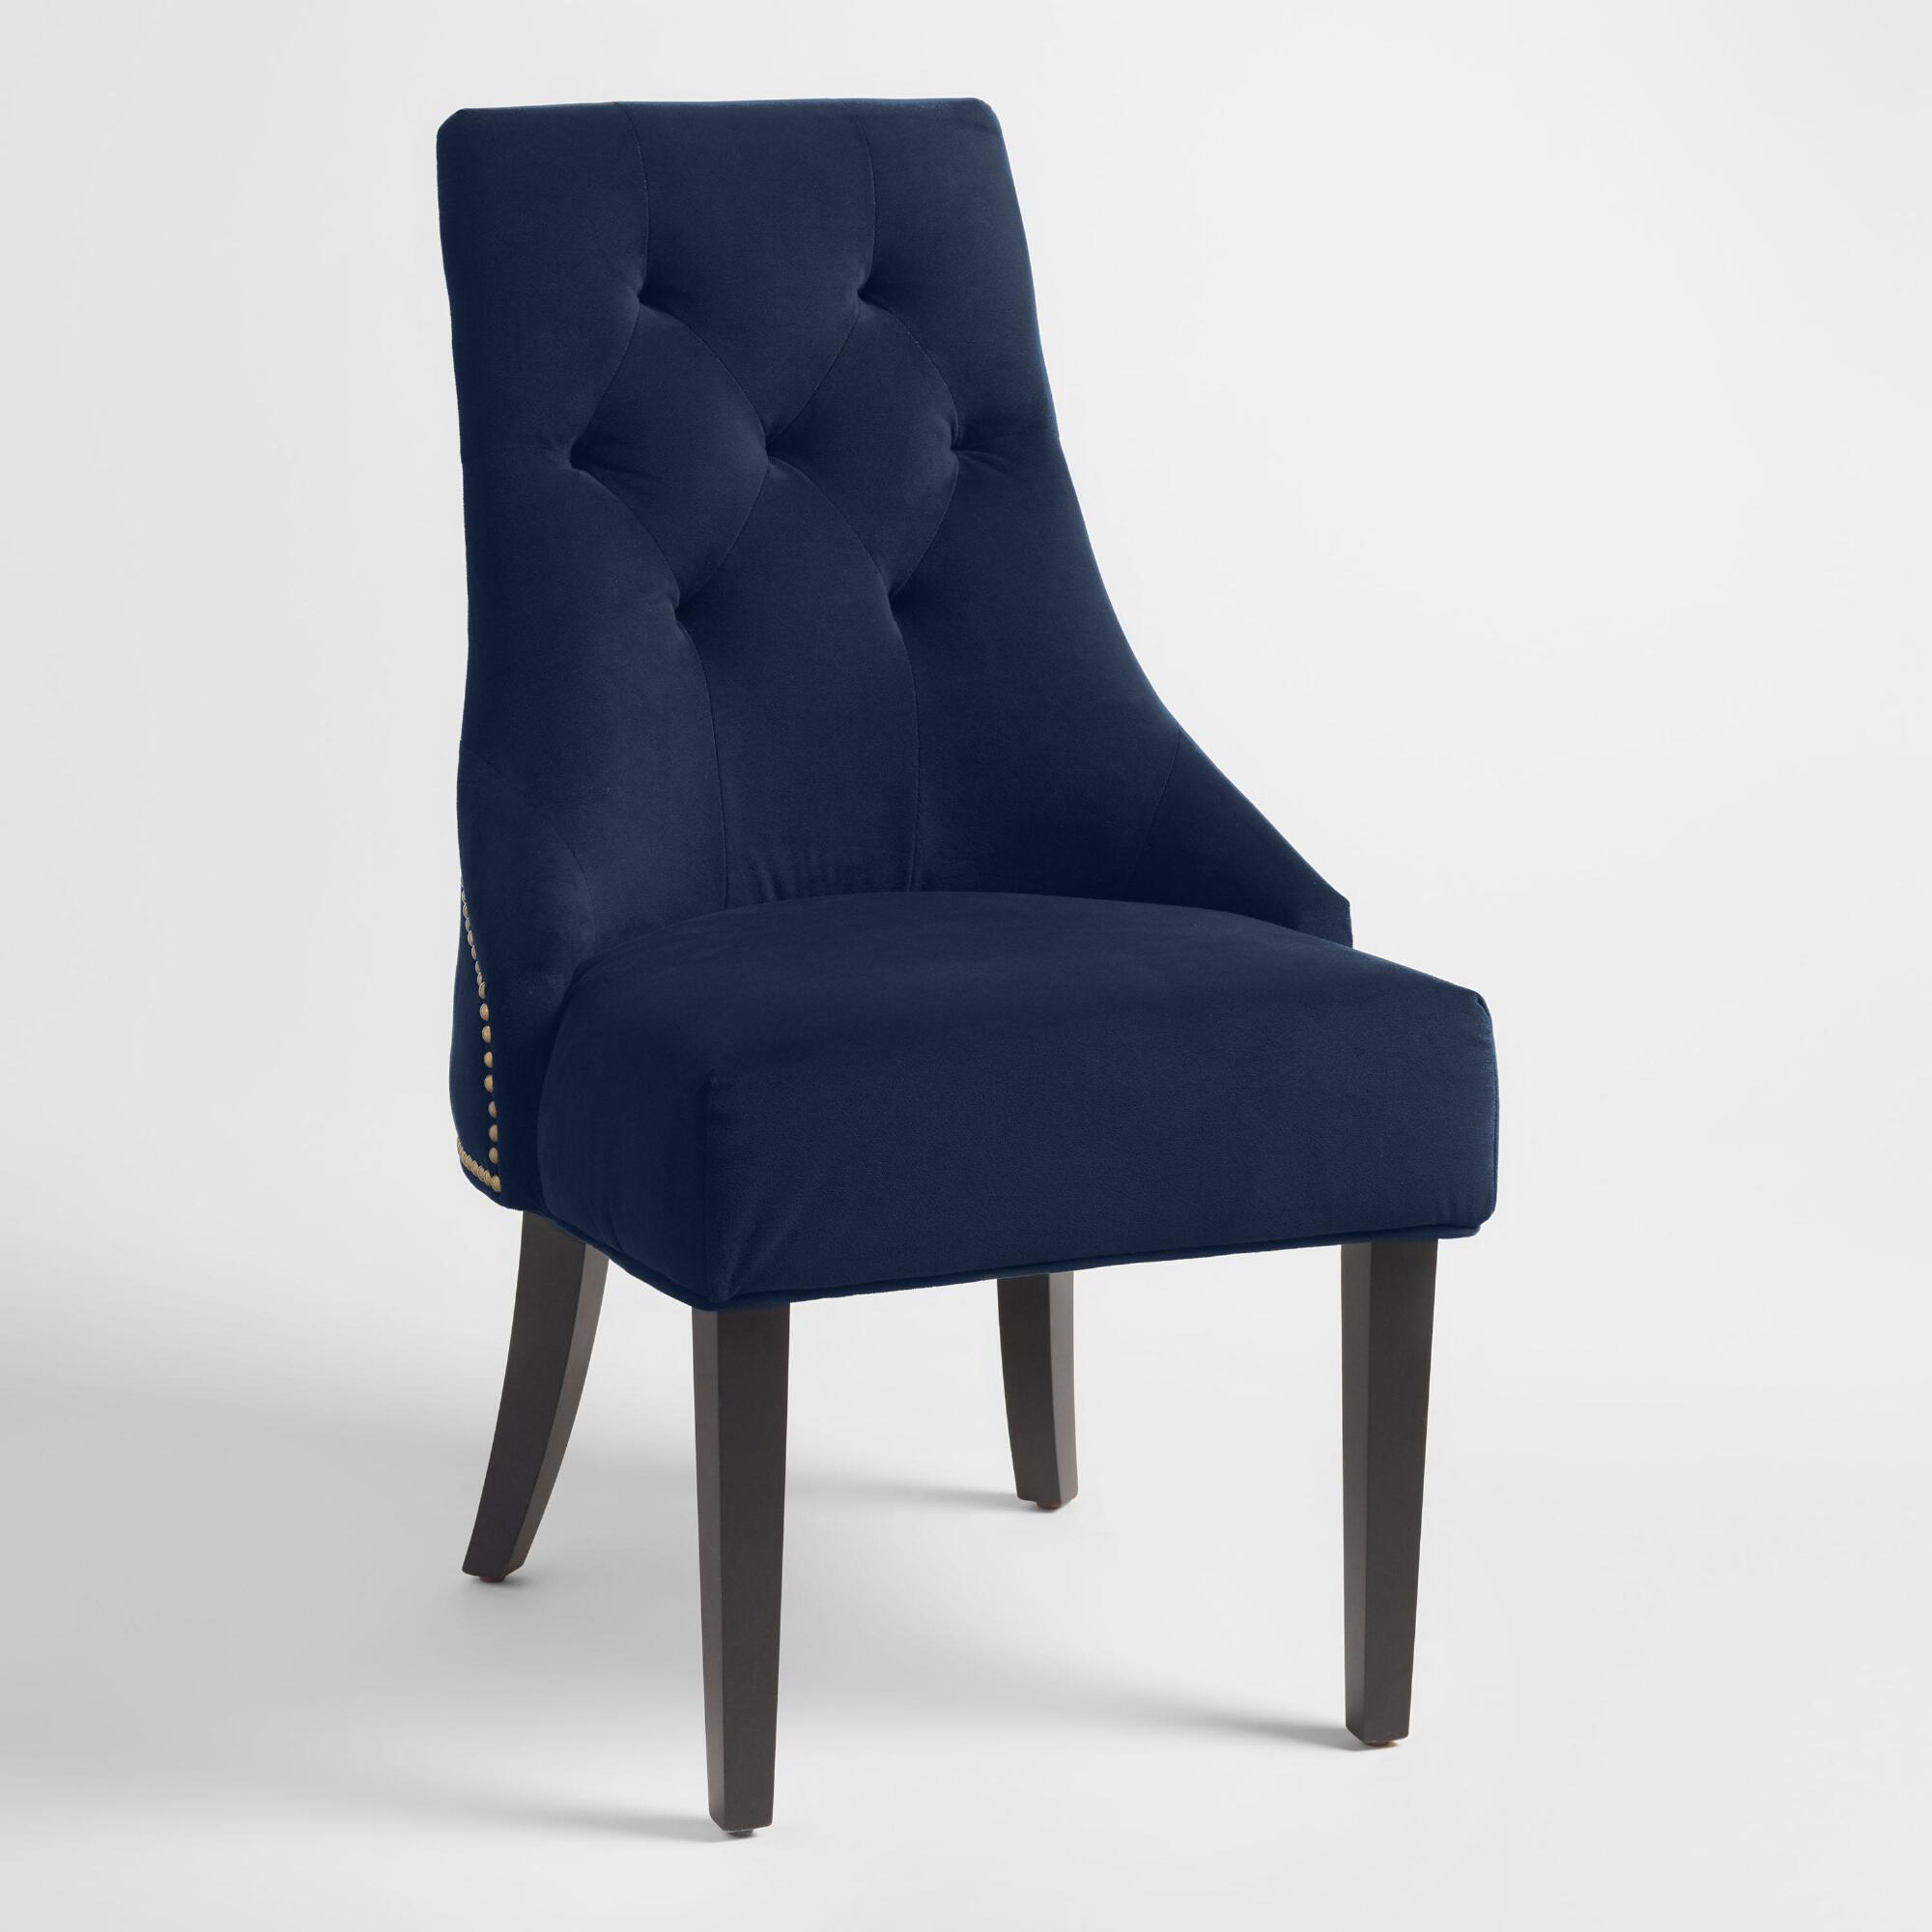 Ink Blue Tufted Lydia Upholstered Dining Chairs Set Of 2 - Fabric by World Market